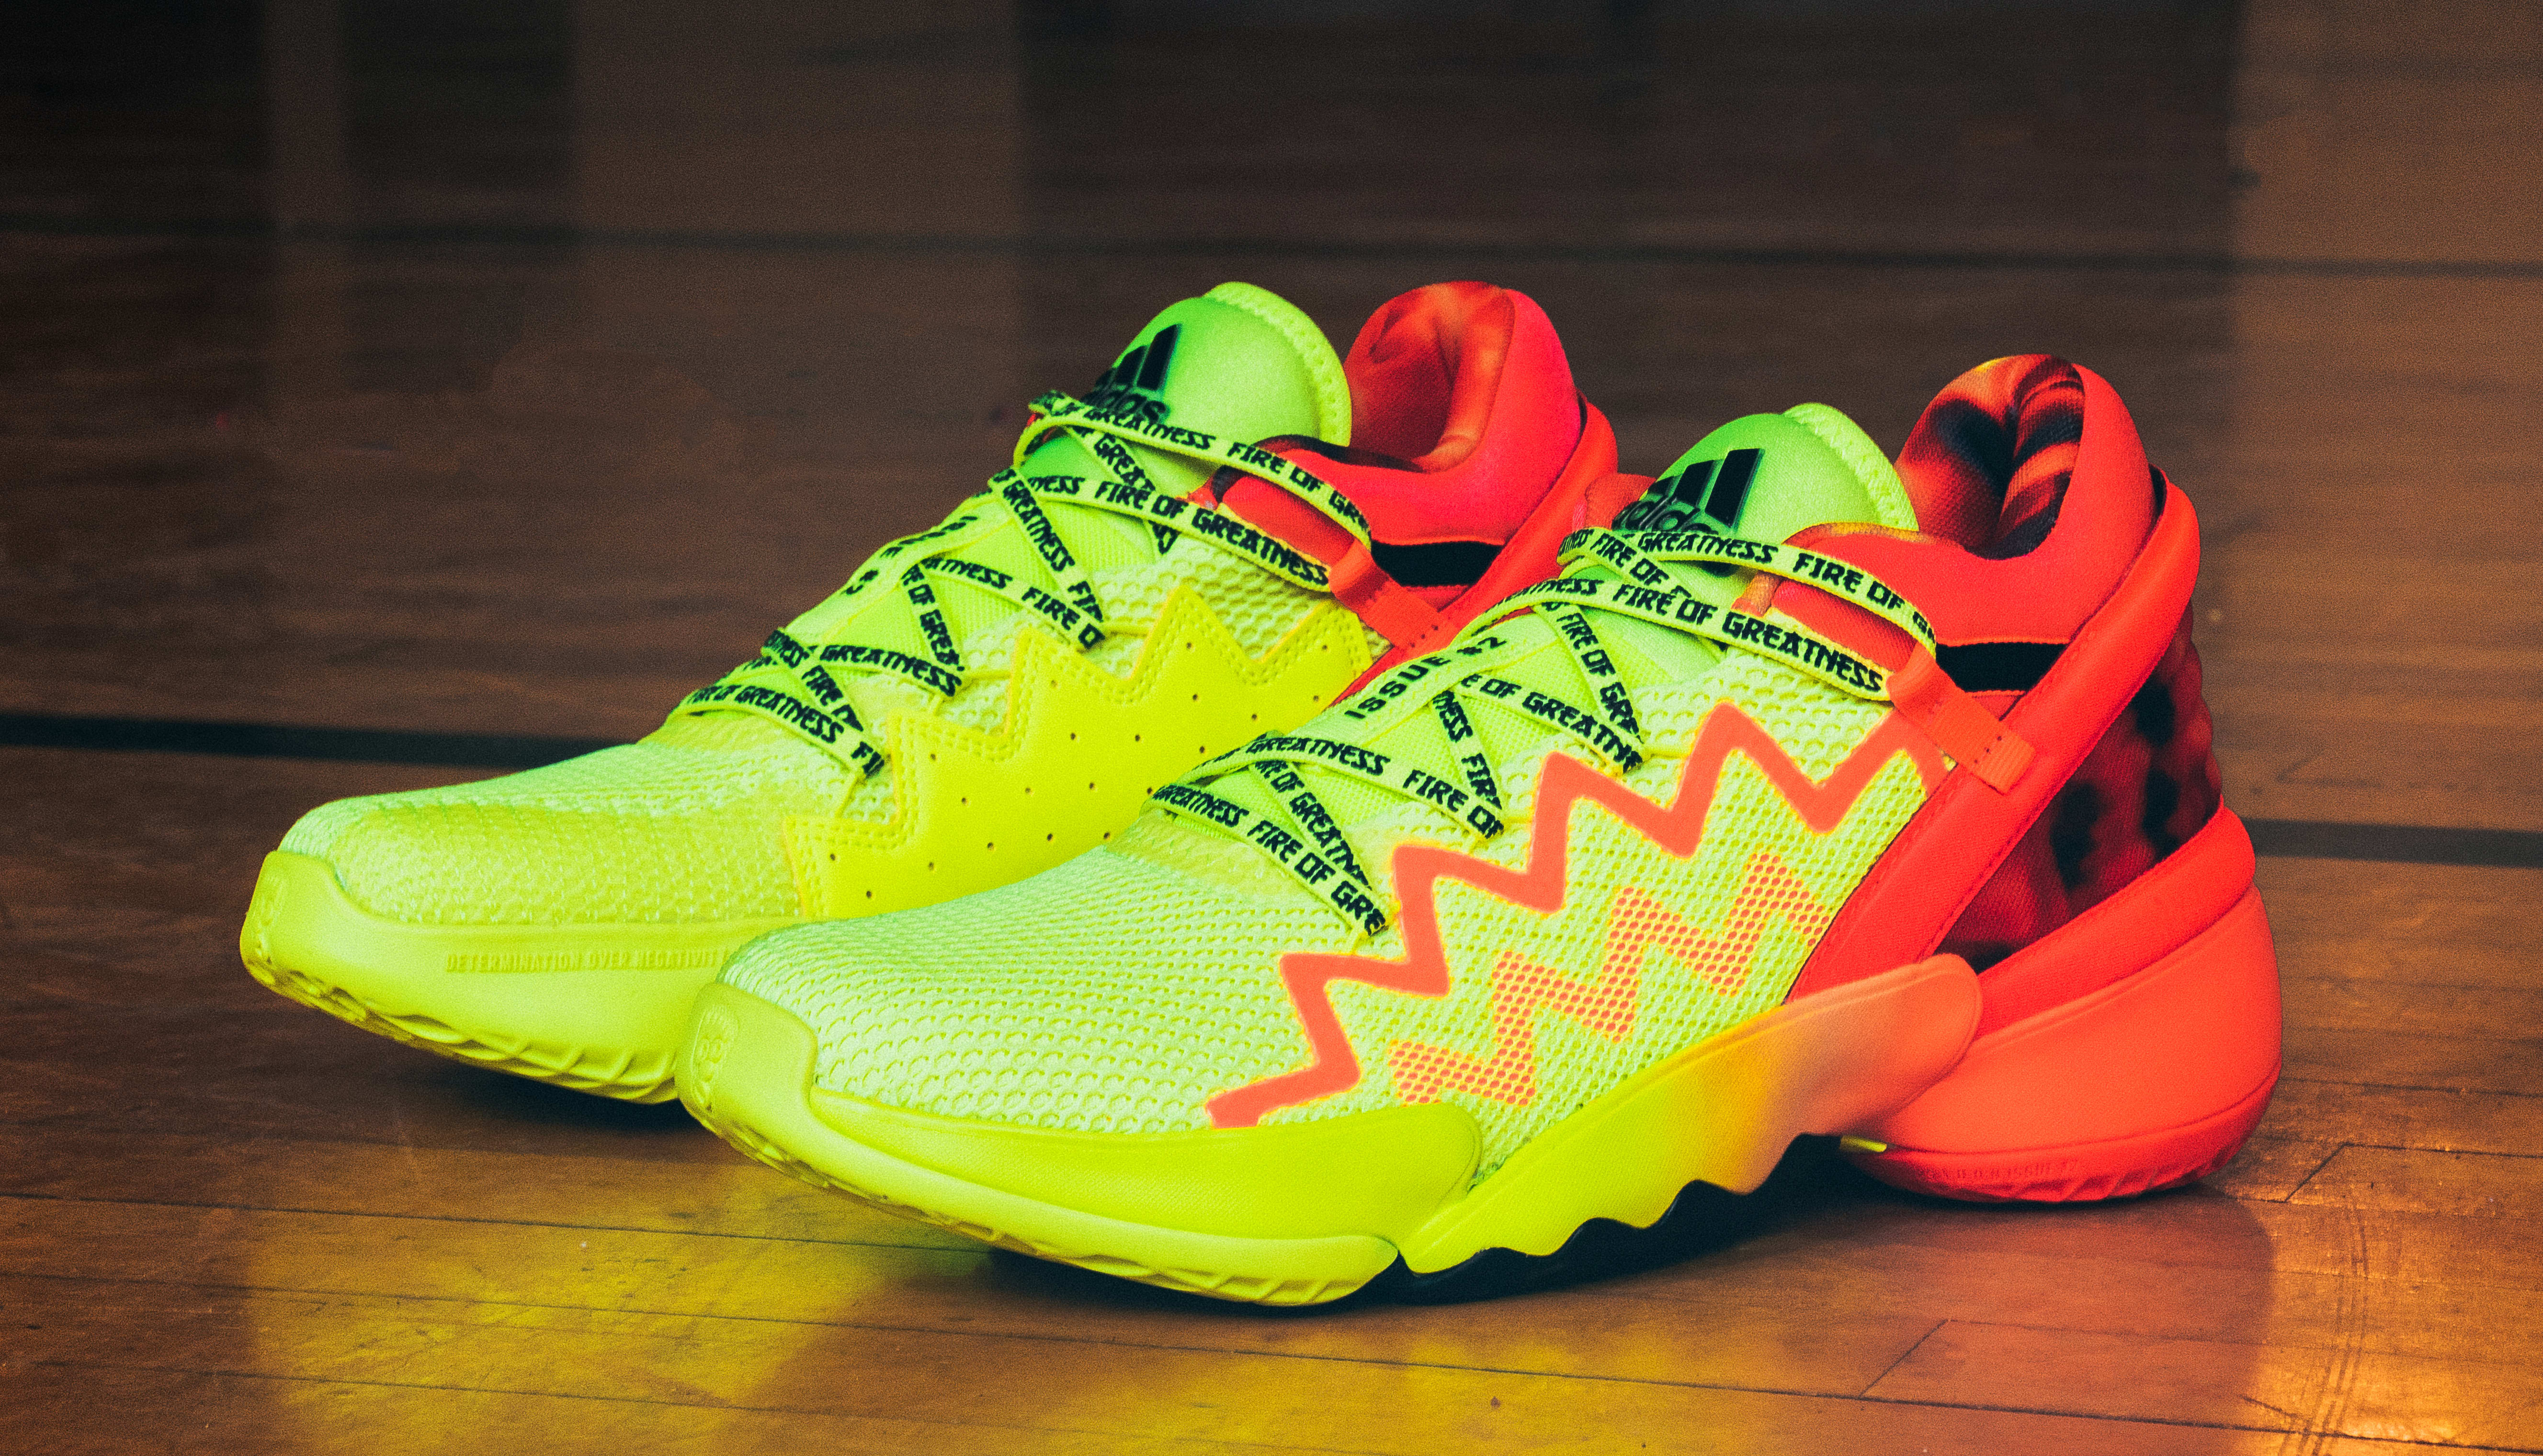 Adidas D.O.N. Issue #2 'Fire of Greatness'